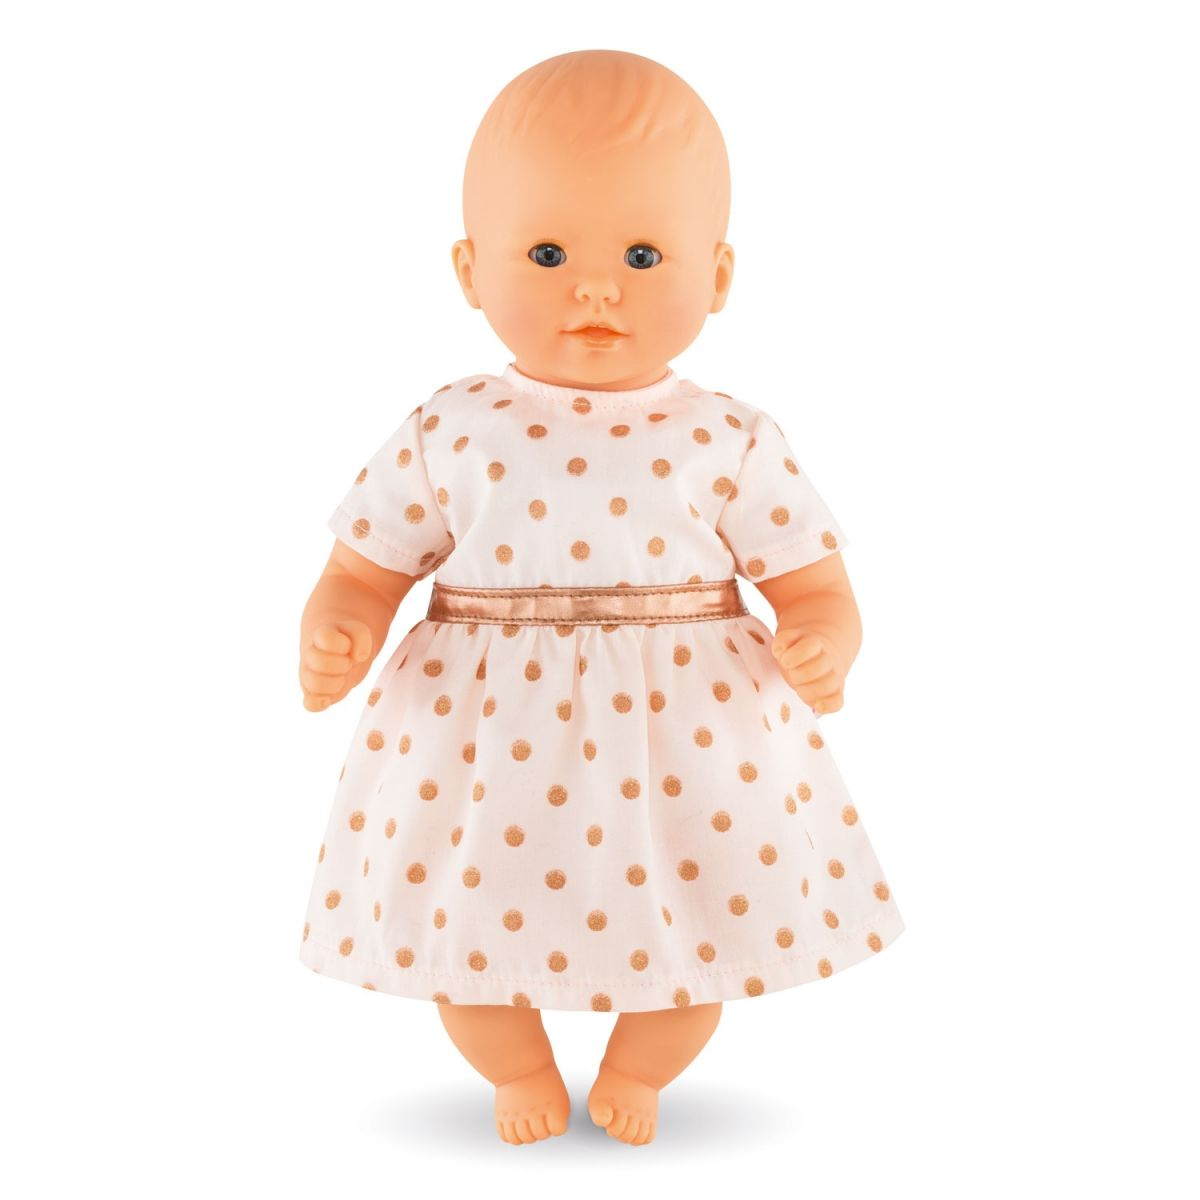 Corolle Pink Gold Dress For 12 Inch Baby Doll Dmv060 Pink And Gold Dress Doll Dress Pink